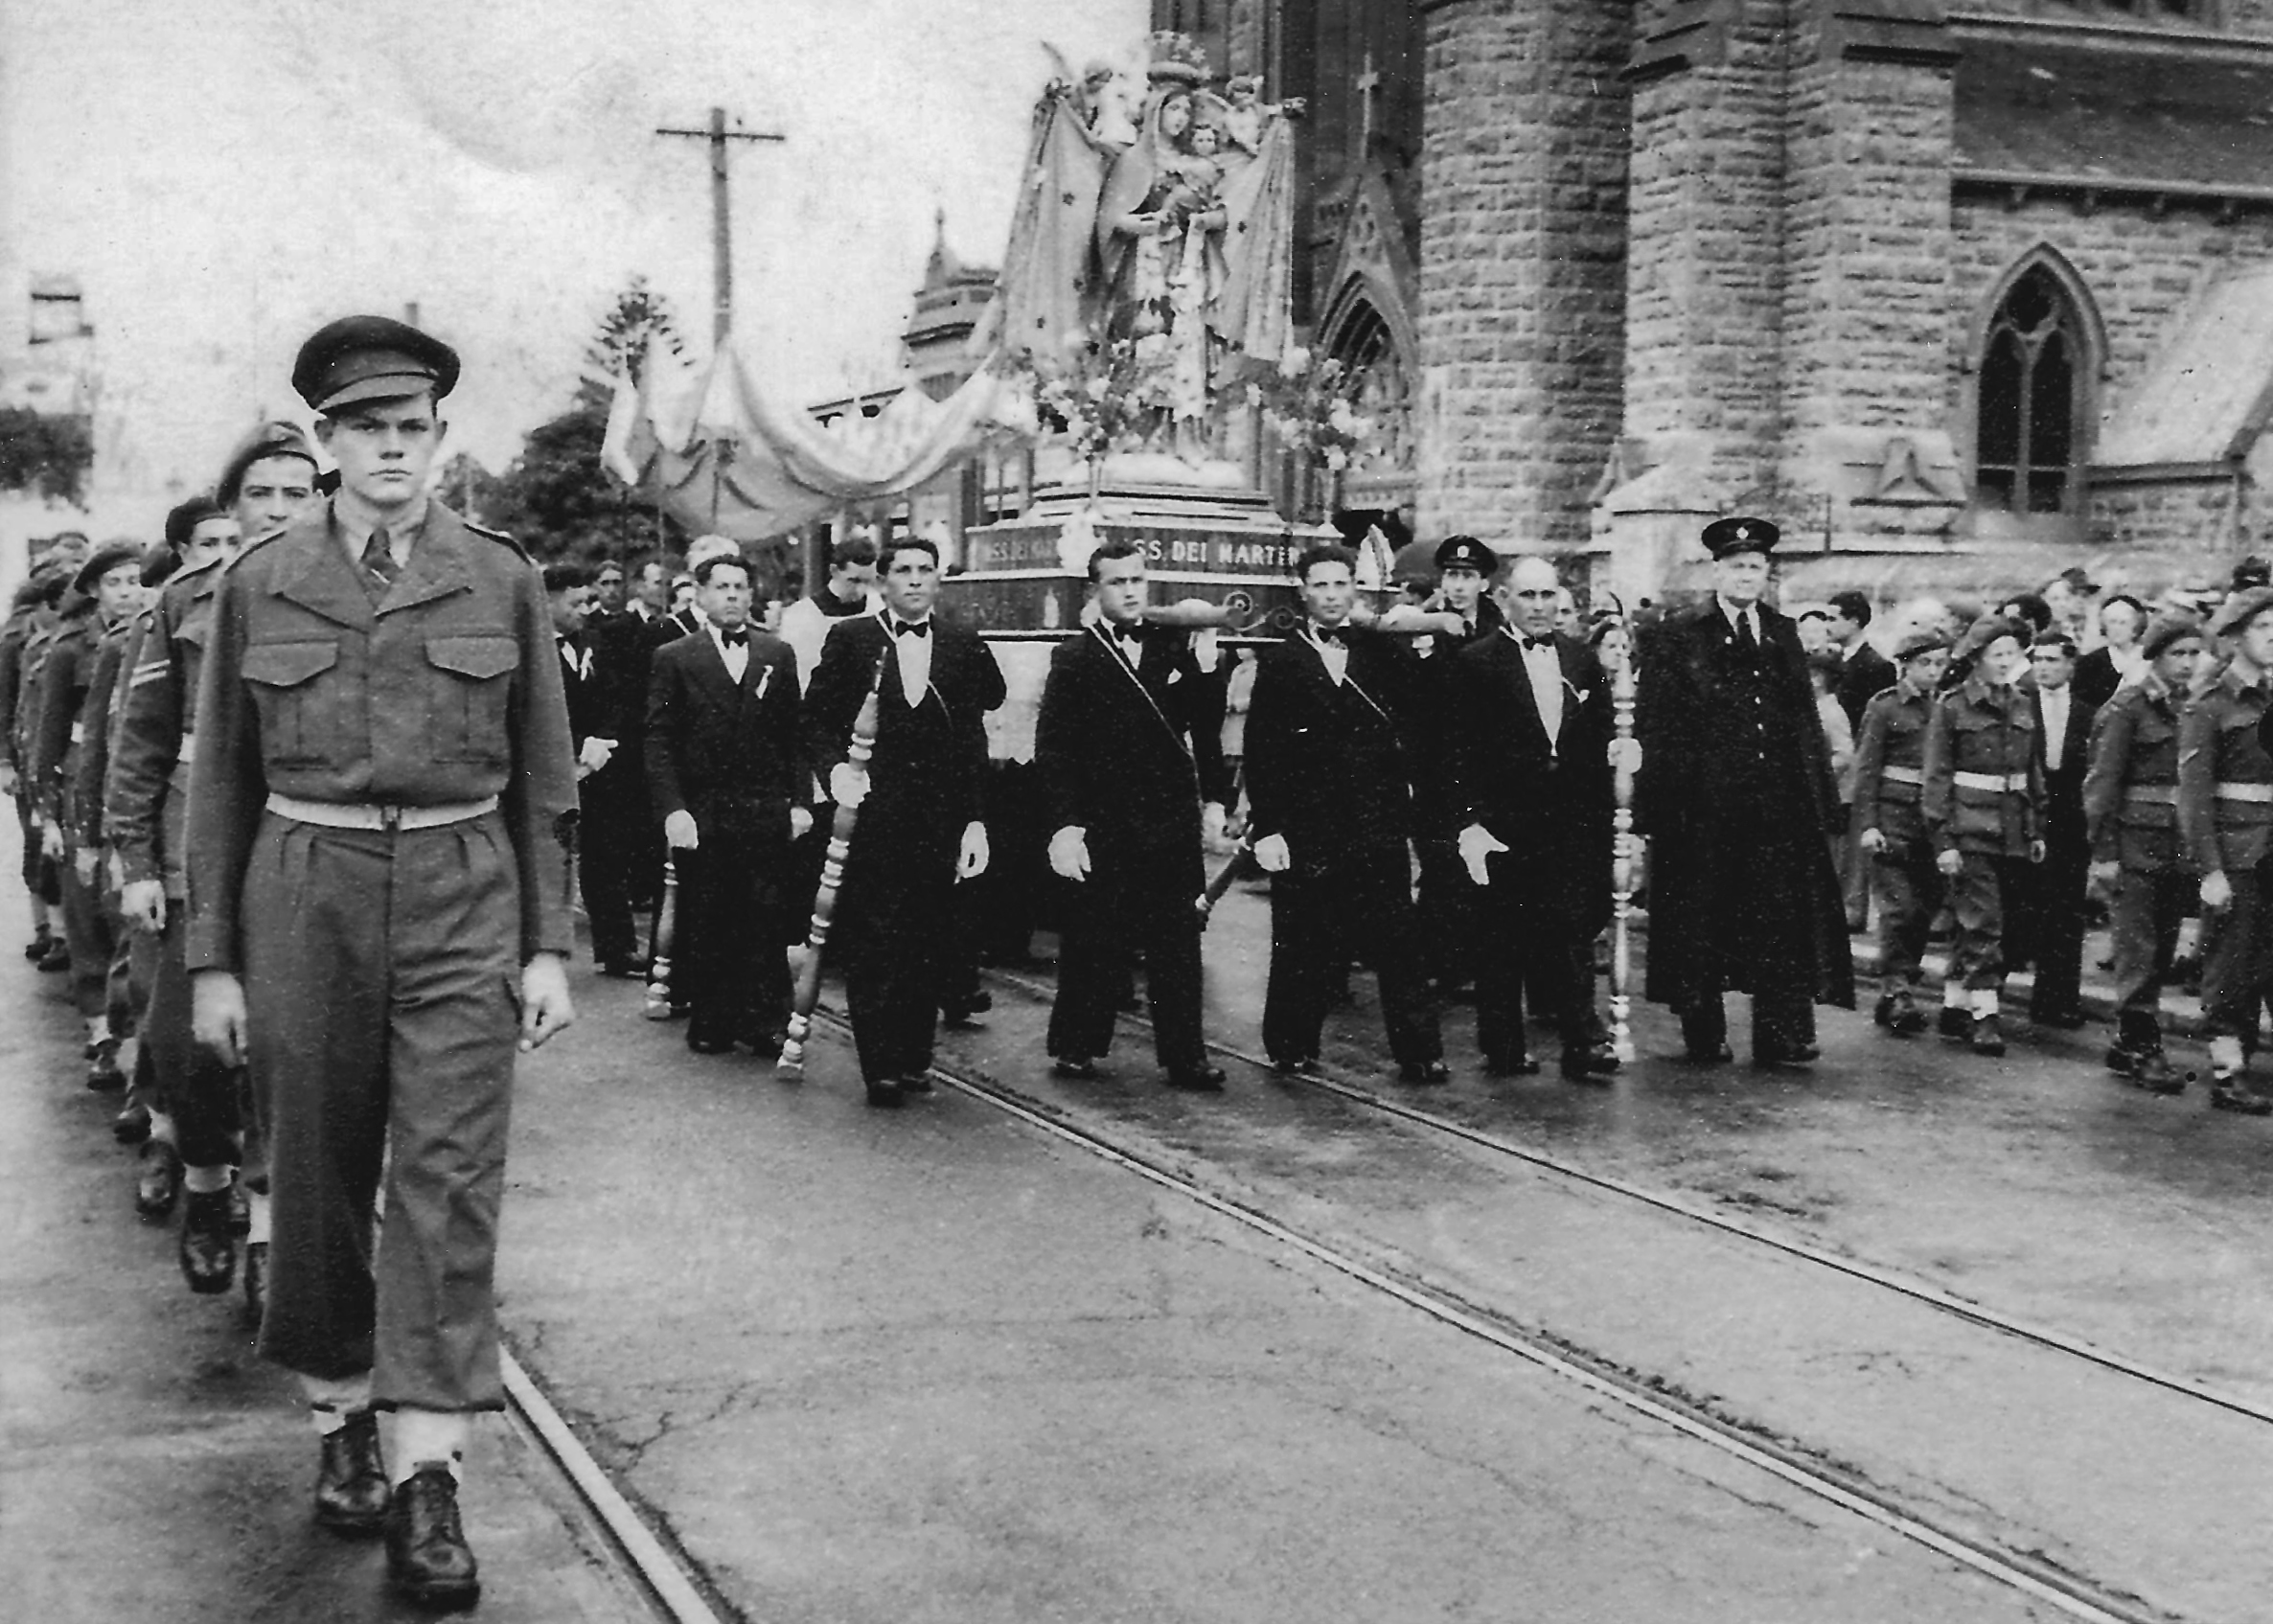 Blessing of the Fleet 1948, with participants still dressed in military uniform post WWII. Photo: Archives.